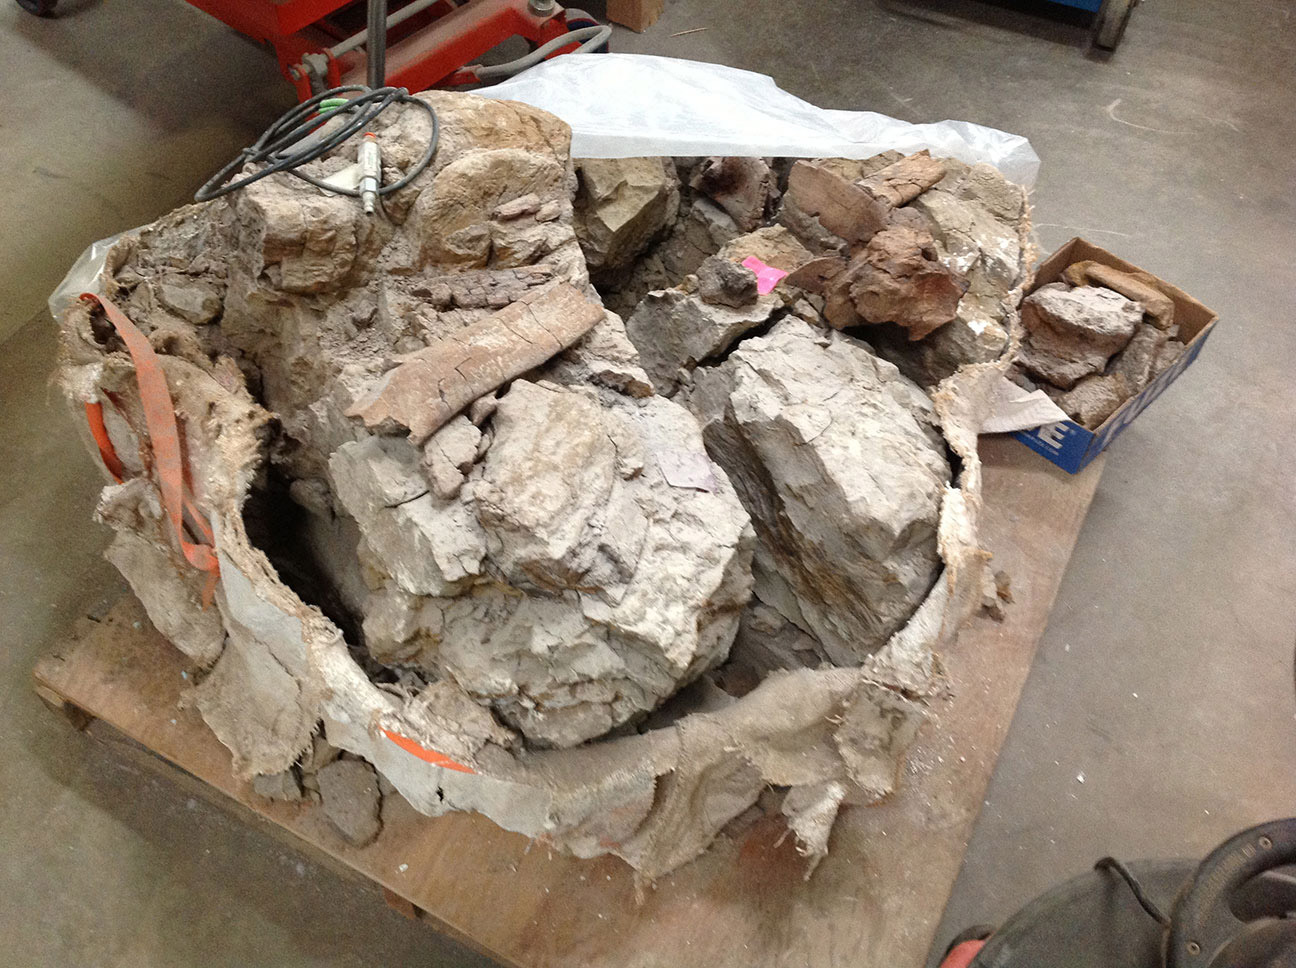 The rib cage of a Triceratops was excavated and wrapped in this jacket of cloth and Plaster of Paris. In the paleontology lab, the jacket is carefully removed. A rib is exposed along the top of the pile of bones and rock.